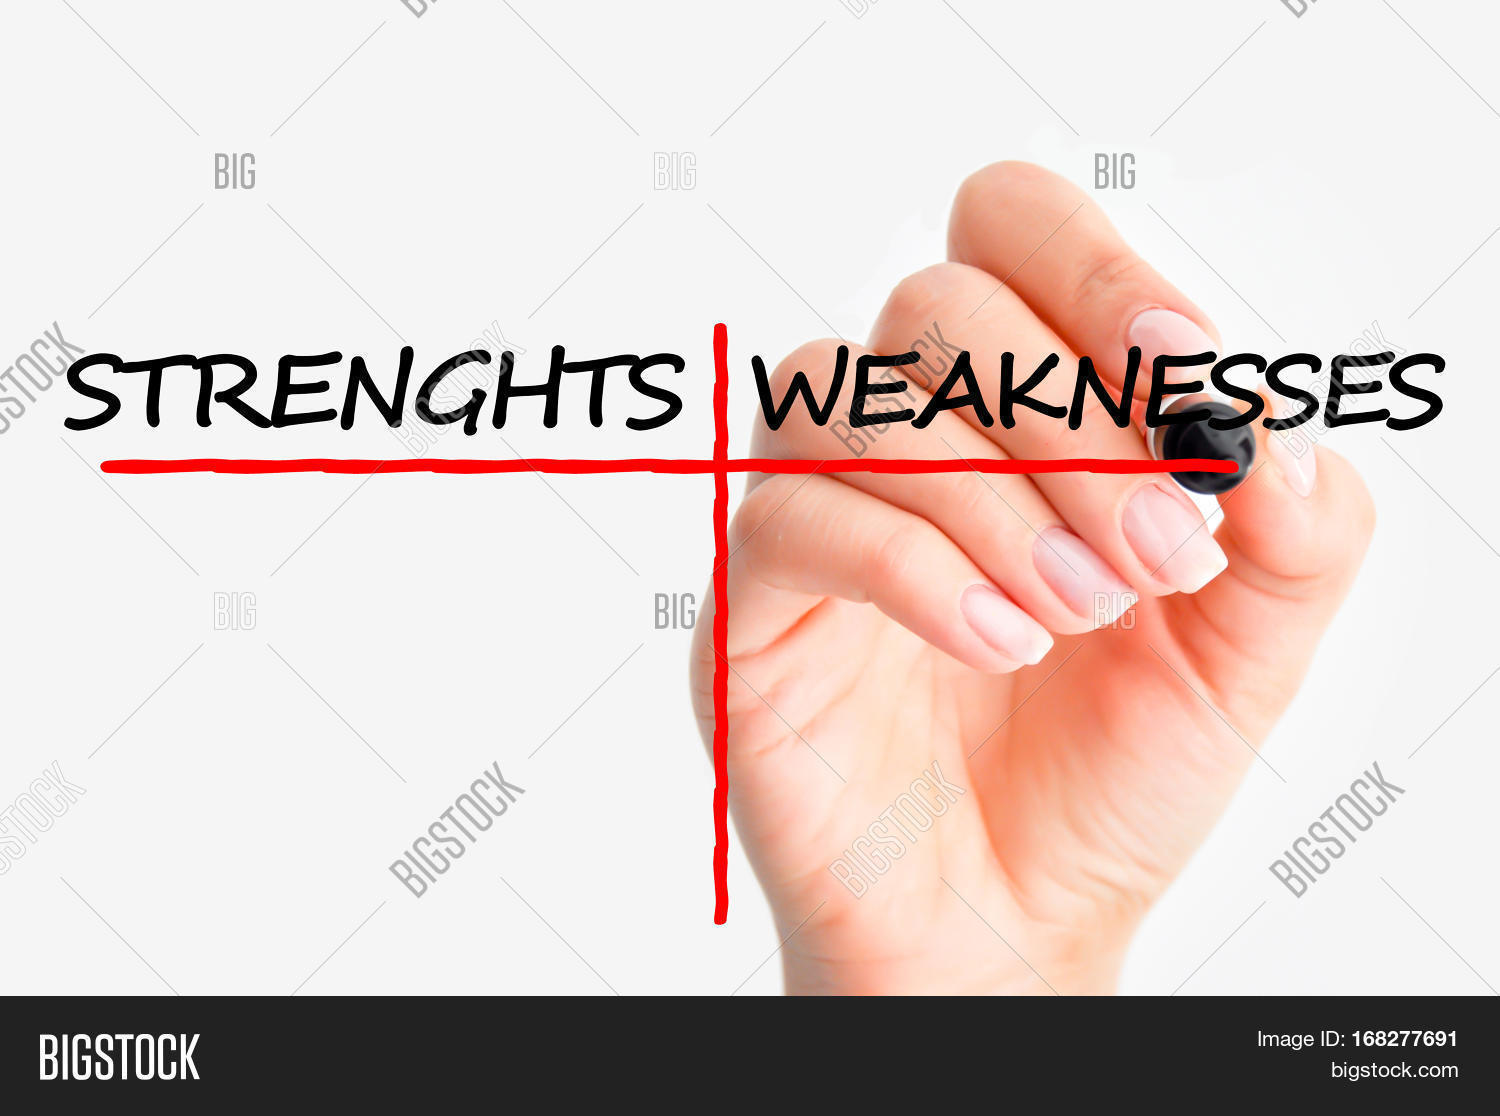 what is your weakness interview question